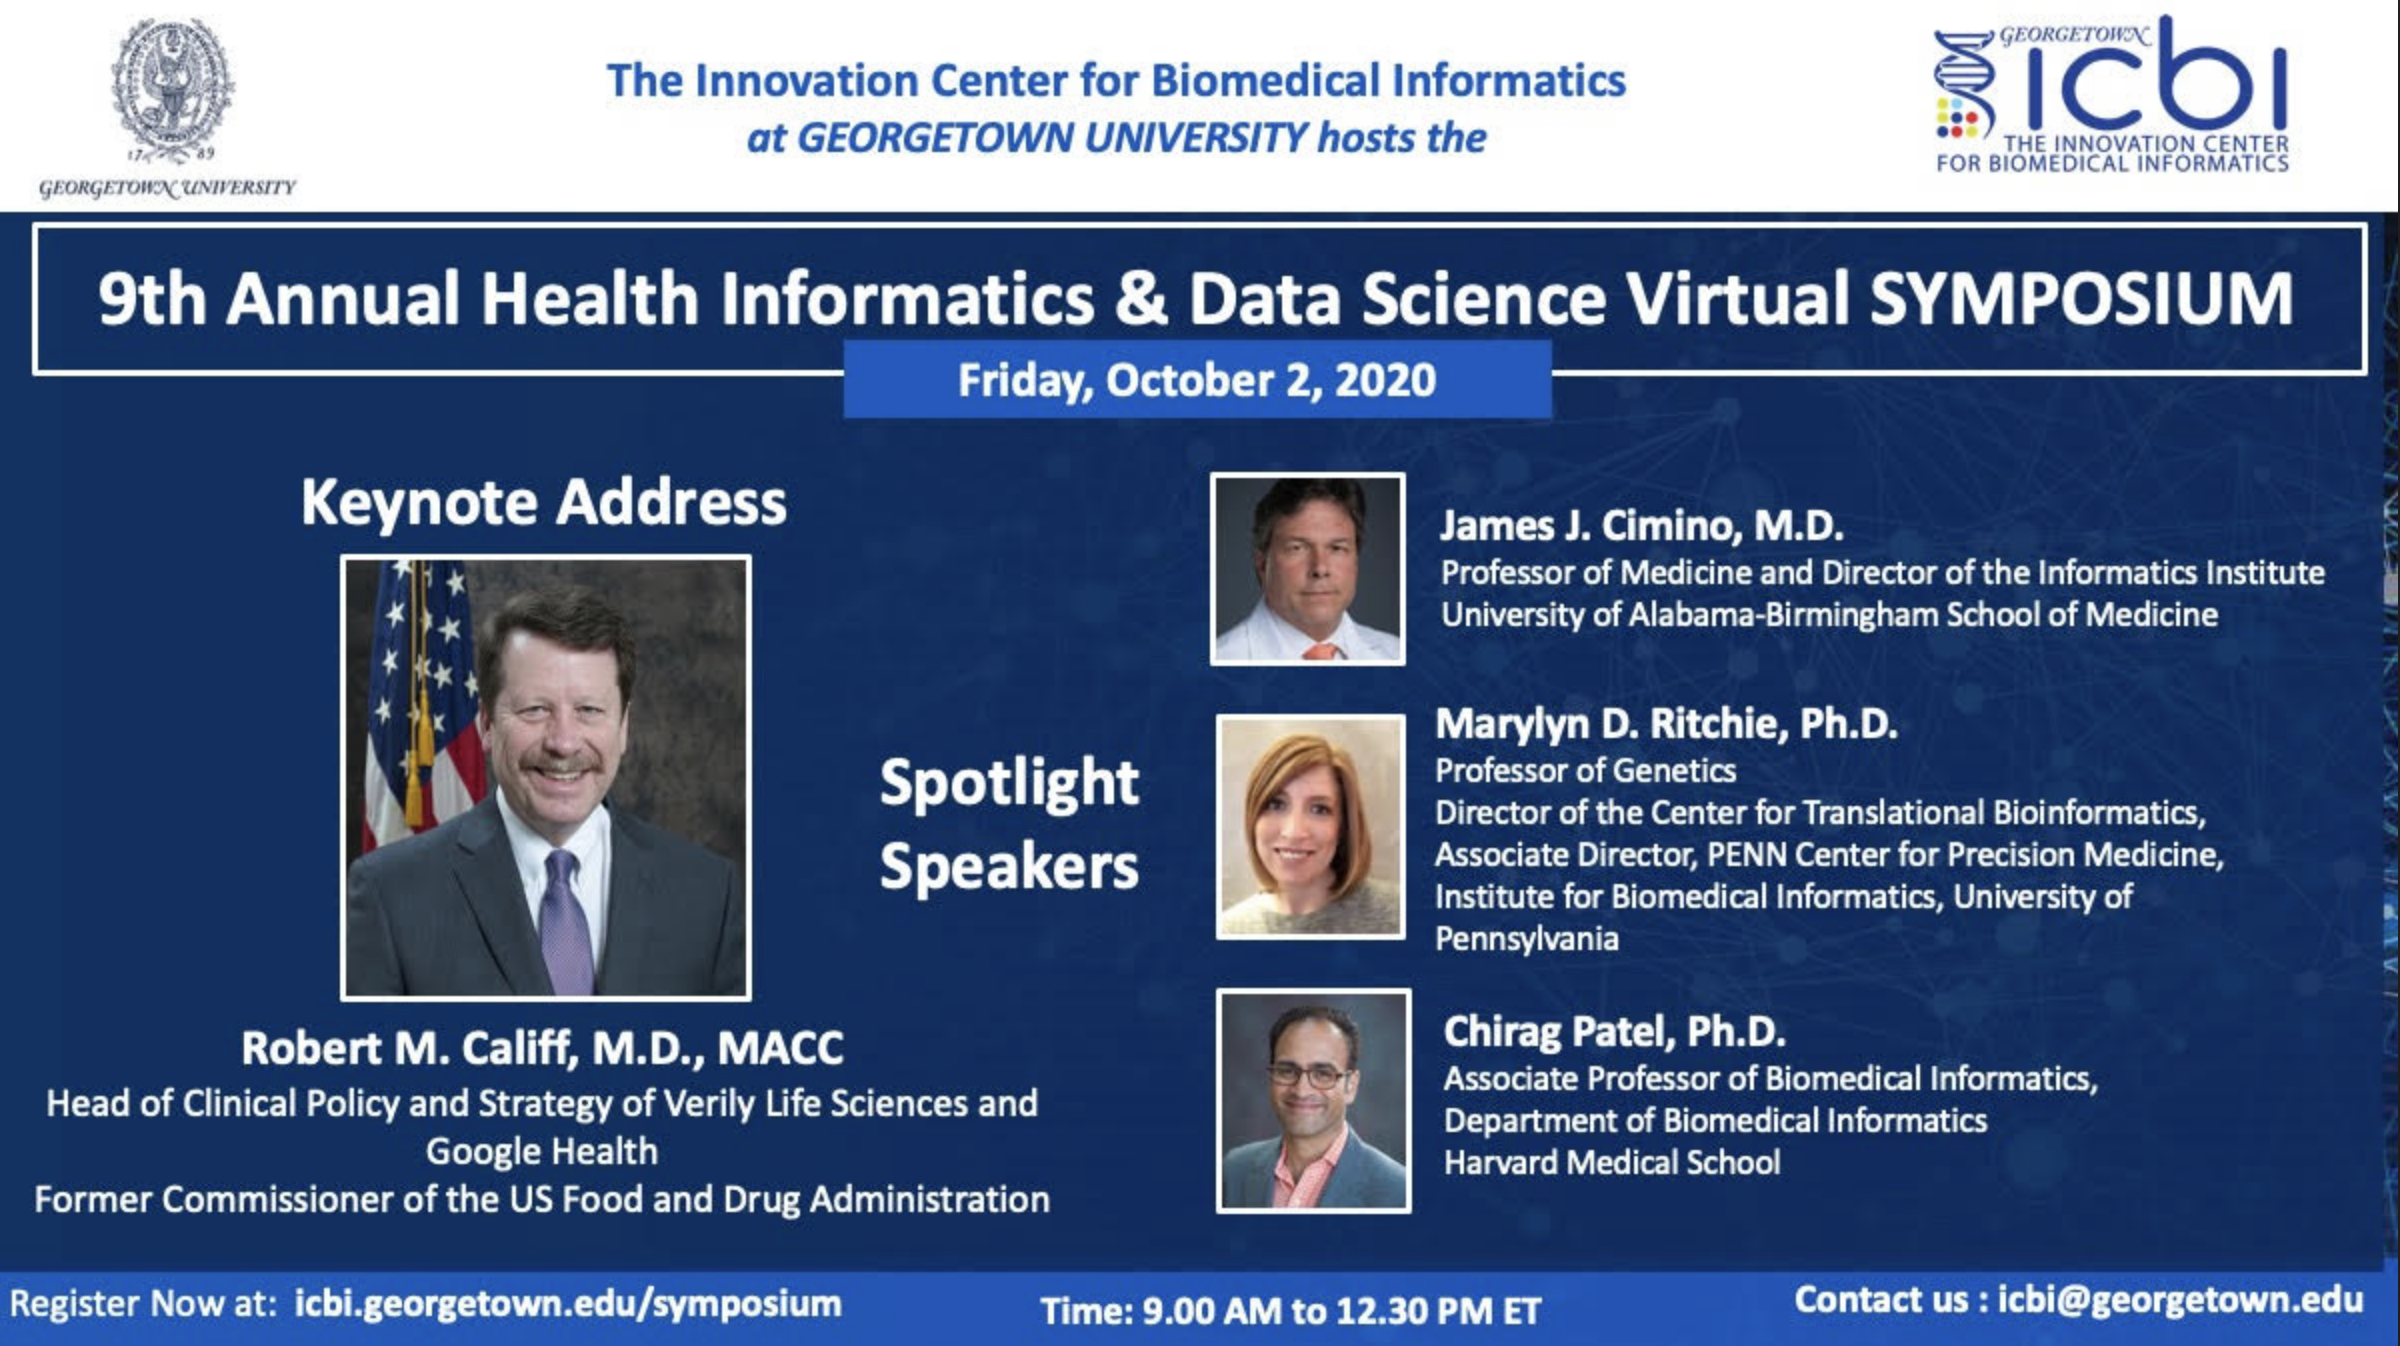 Details for the 9th Annual Health Informatics & Data Science Virtual Symposium